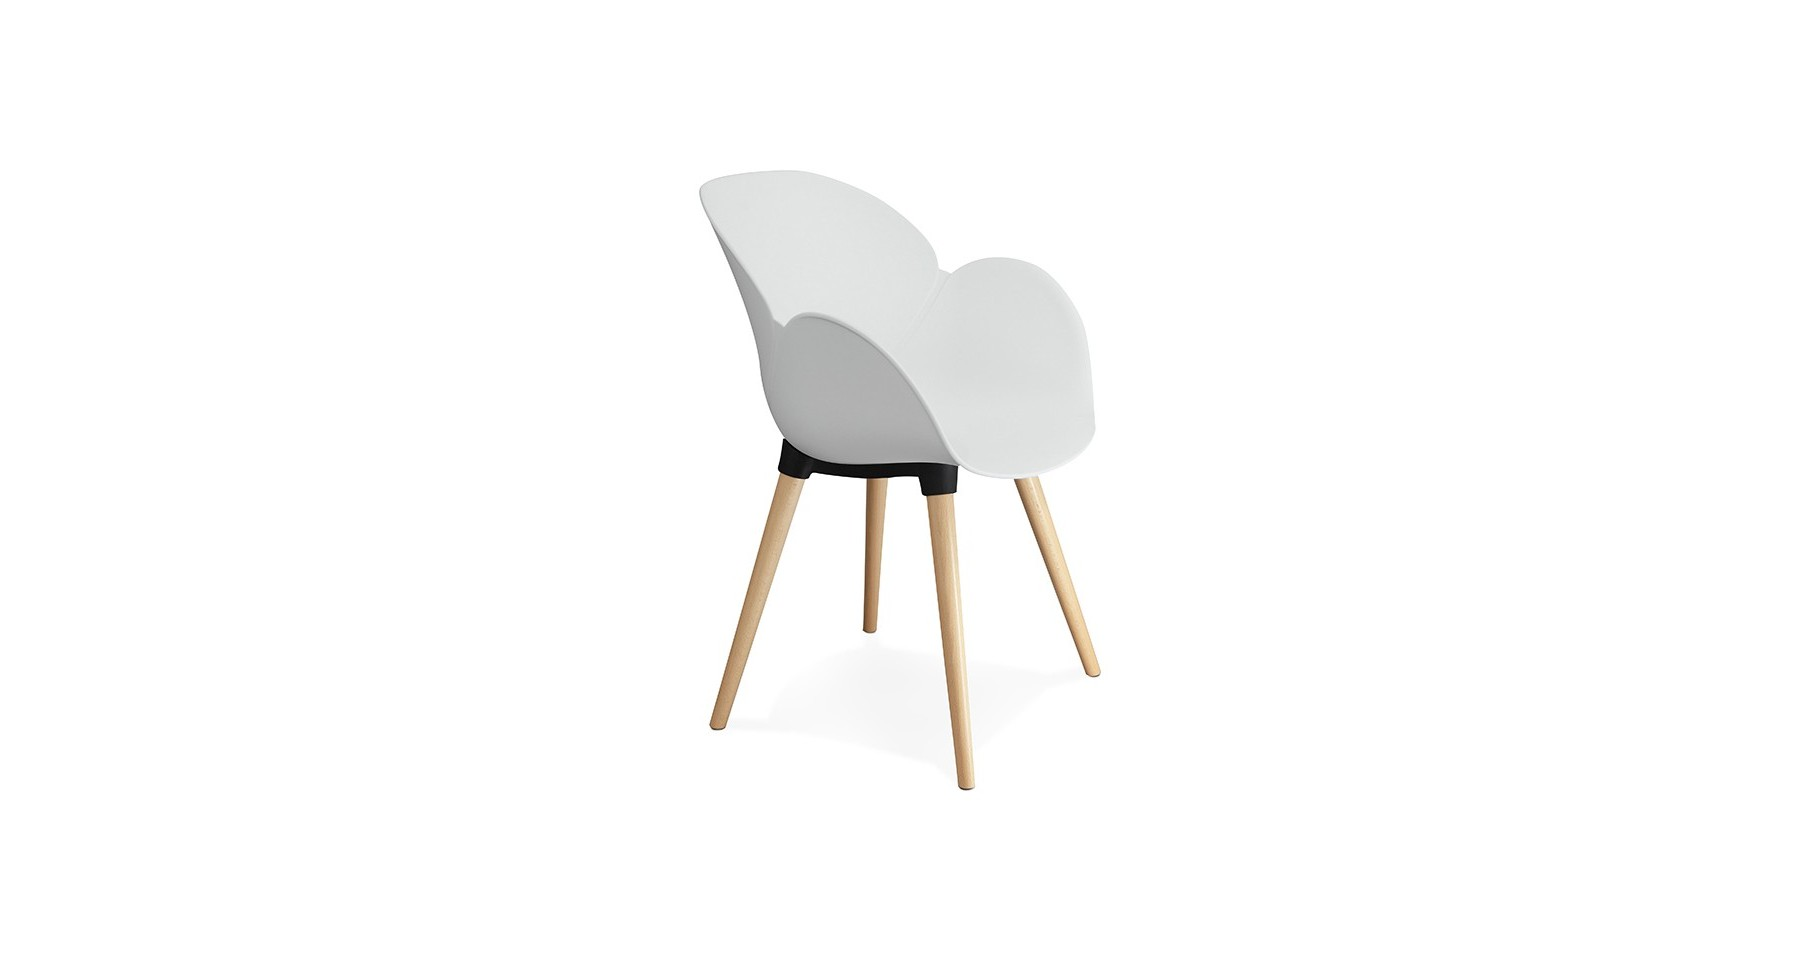 Chaise Blanche Pied Bois Chaise Scandinave Blanche Bois